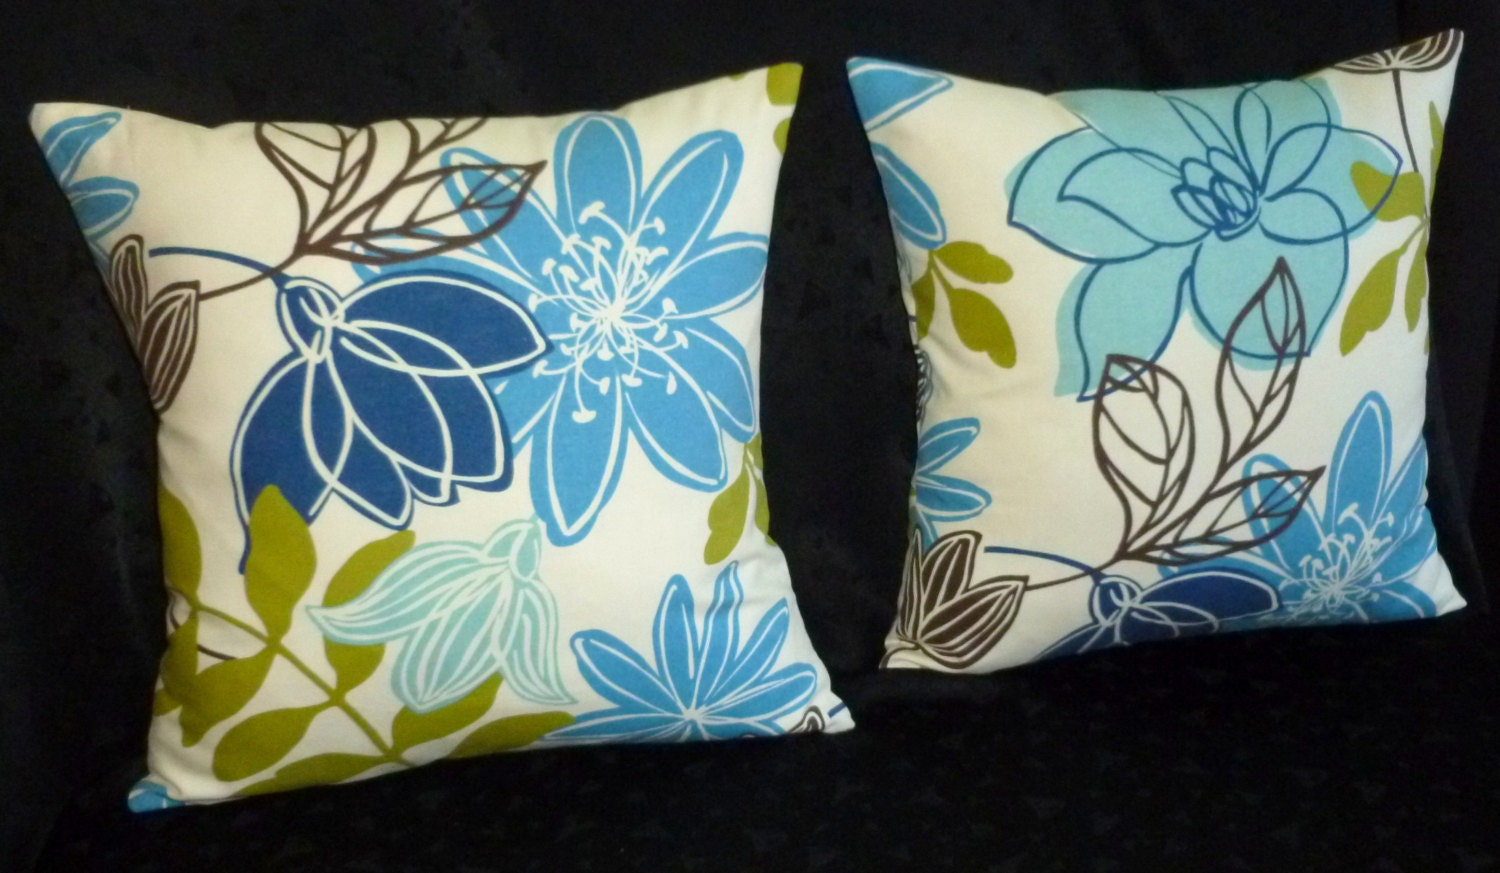 Decorative Throw Pillows Magnolia Home Fashions by berly731